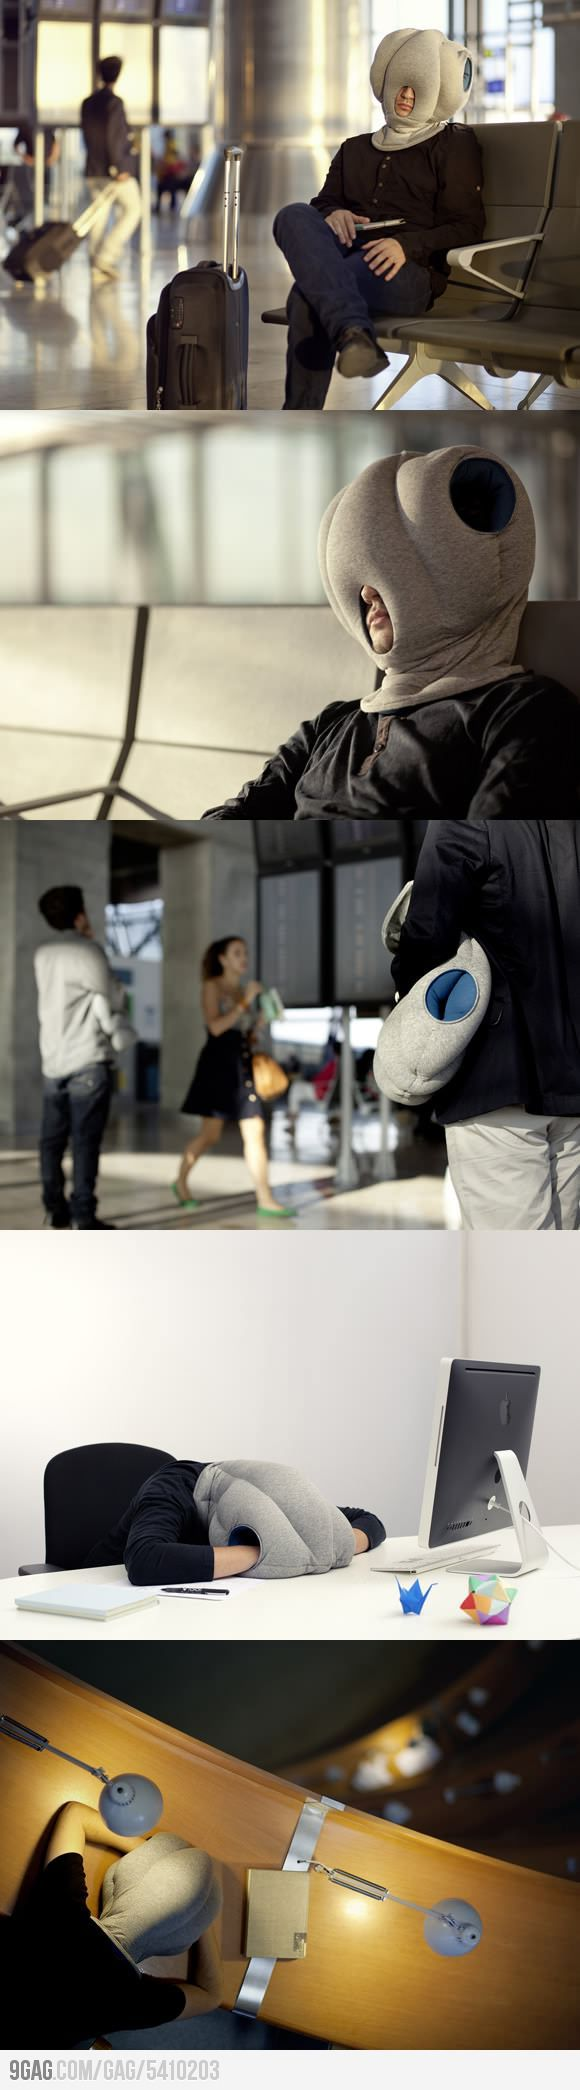 Ostrich Pillow allows you to sleep anywhere...:D  I'm still laughing!!!